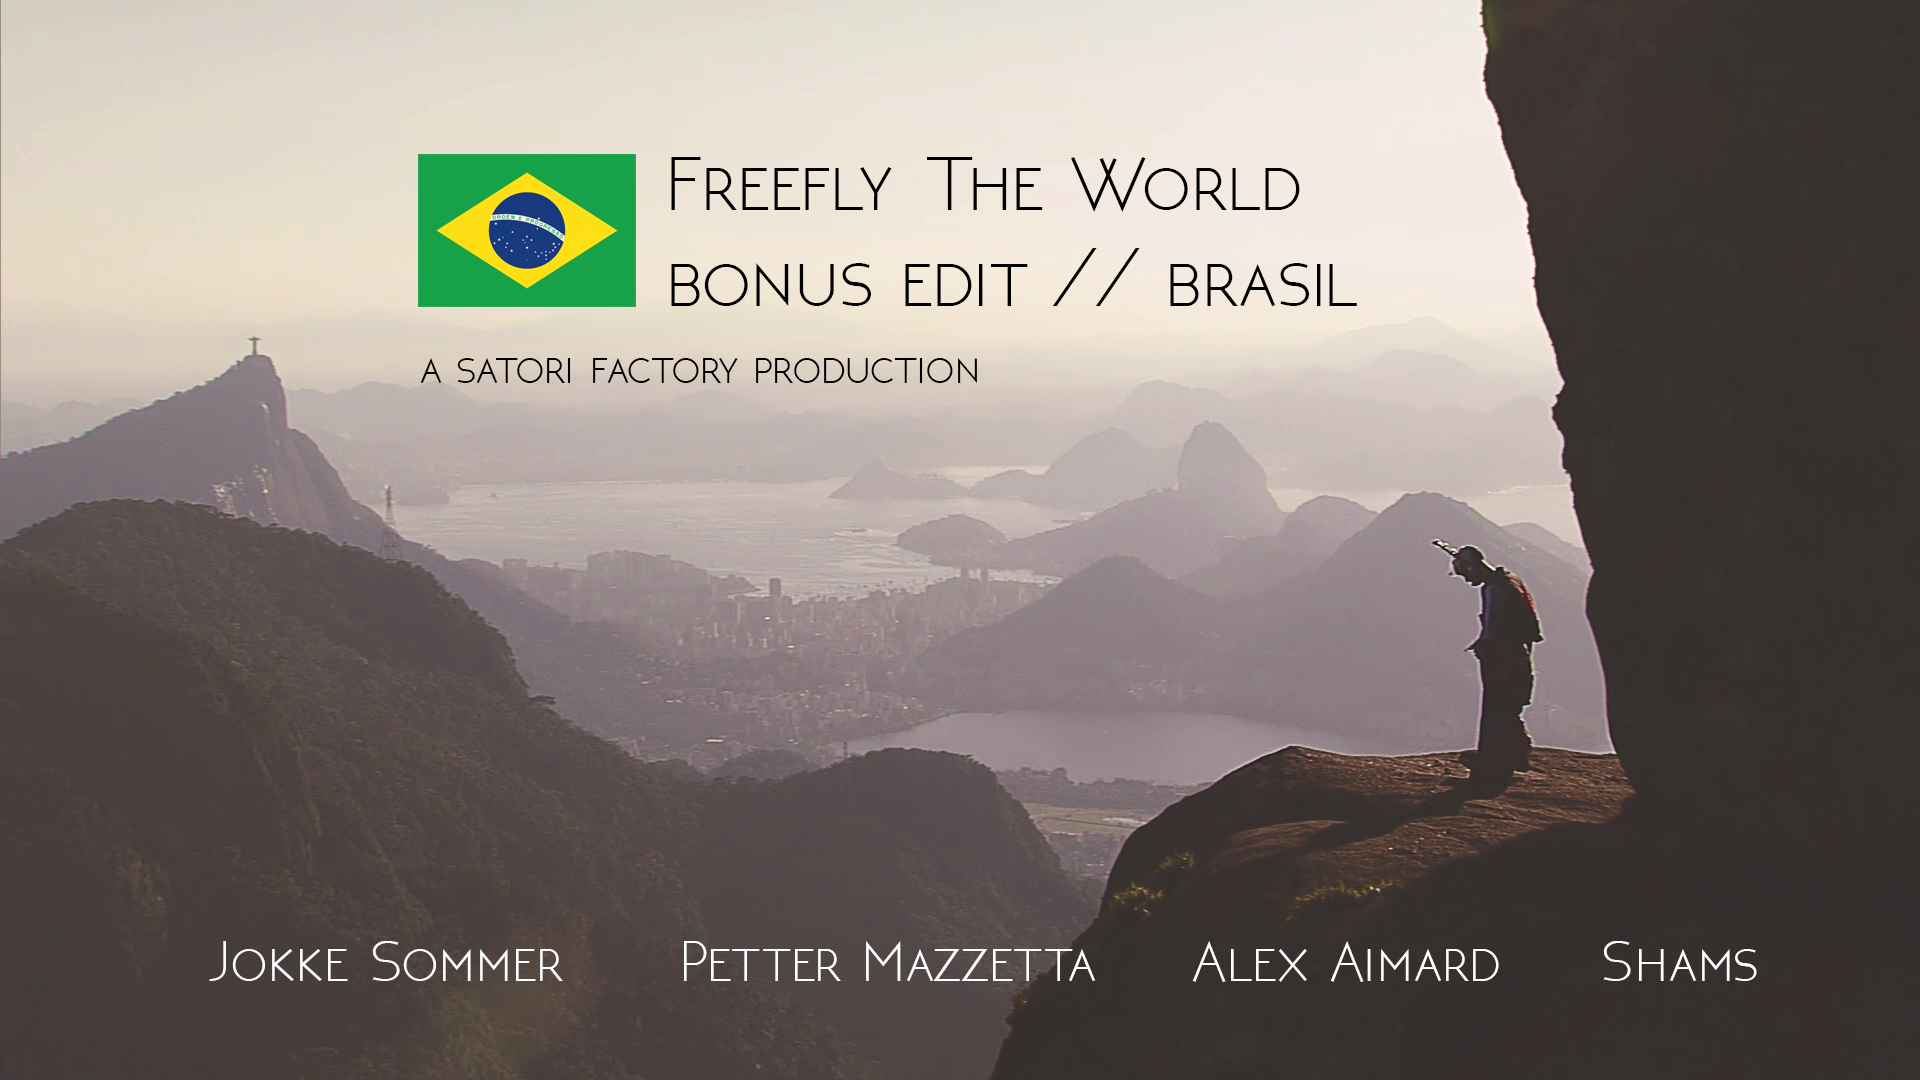 Freefly The World bonus edit Rio